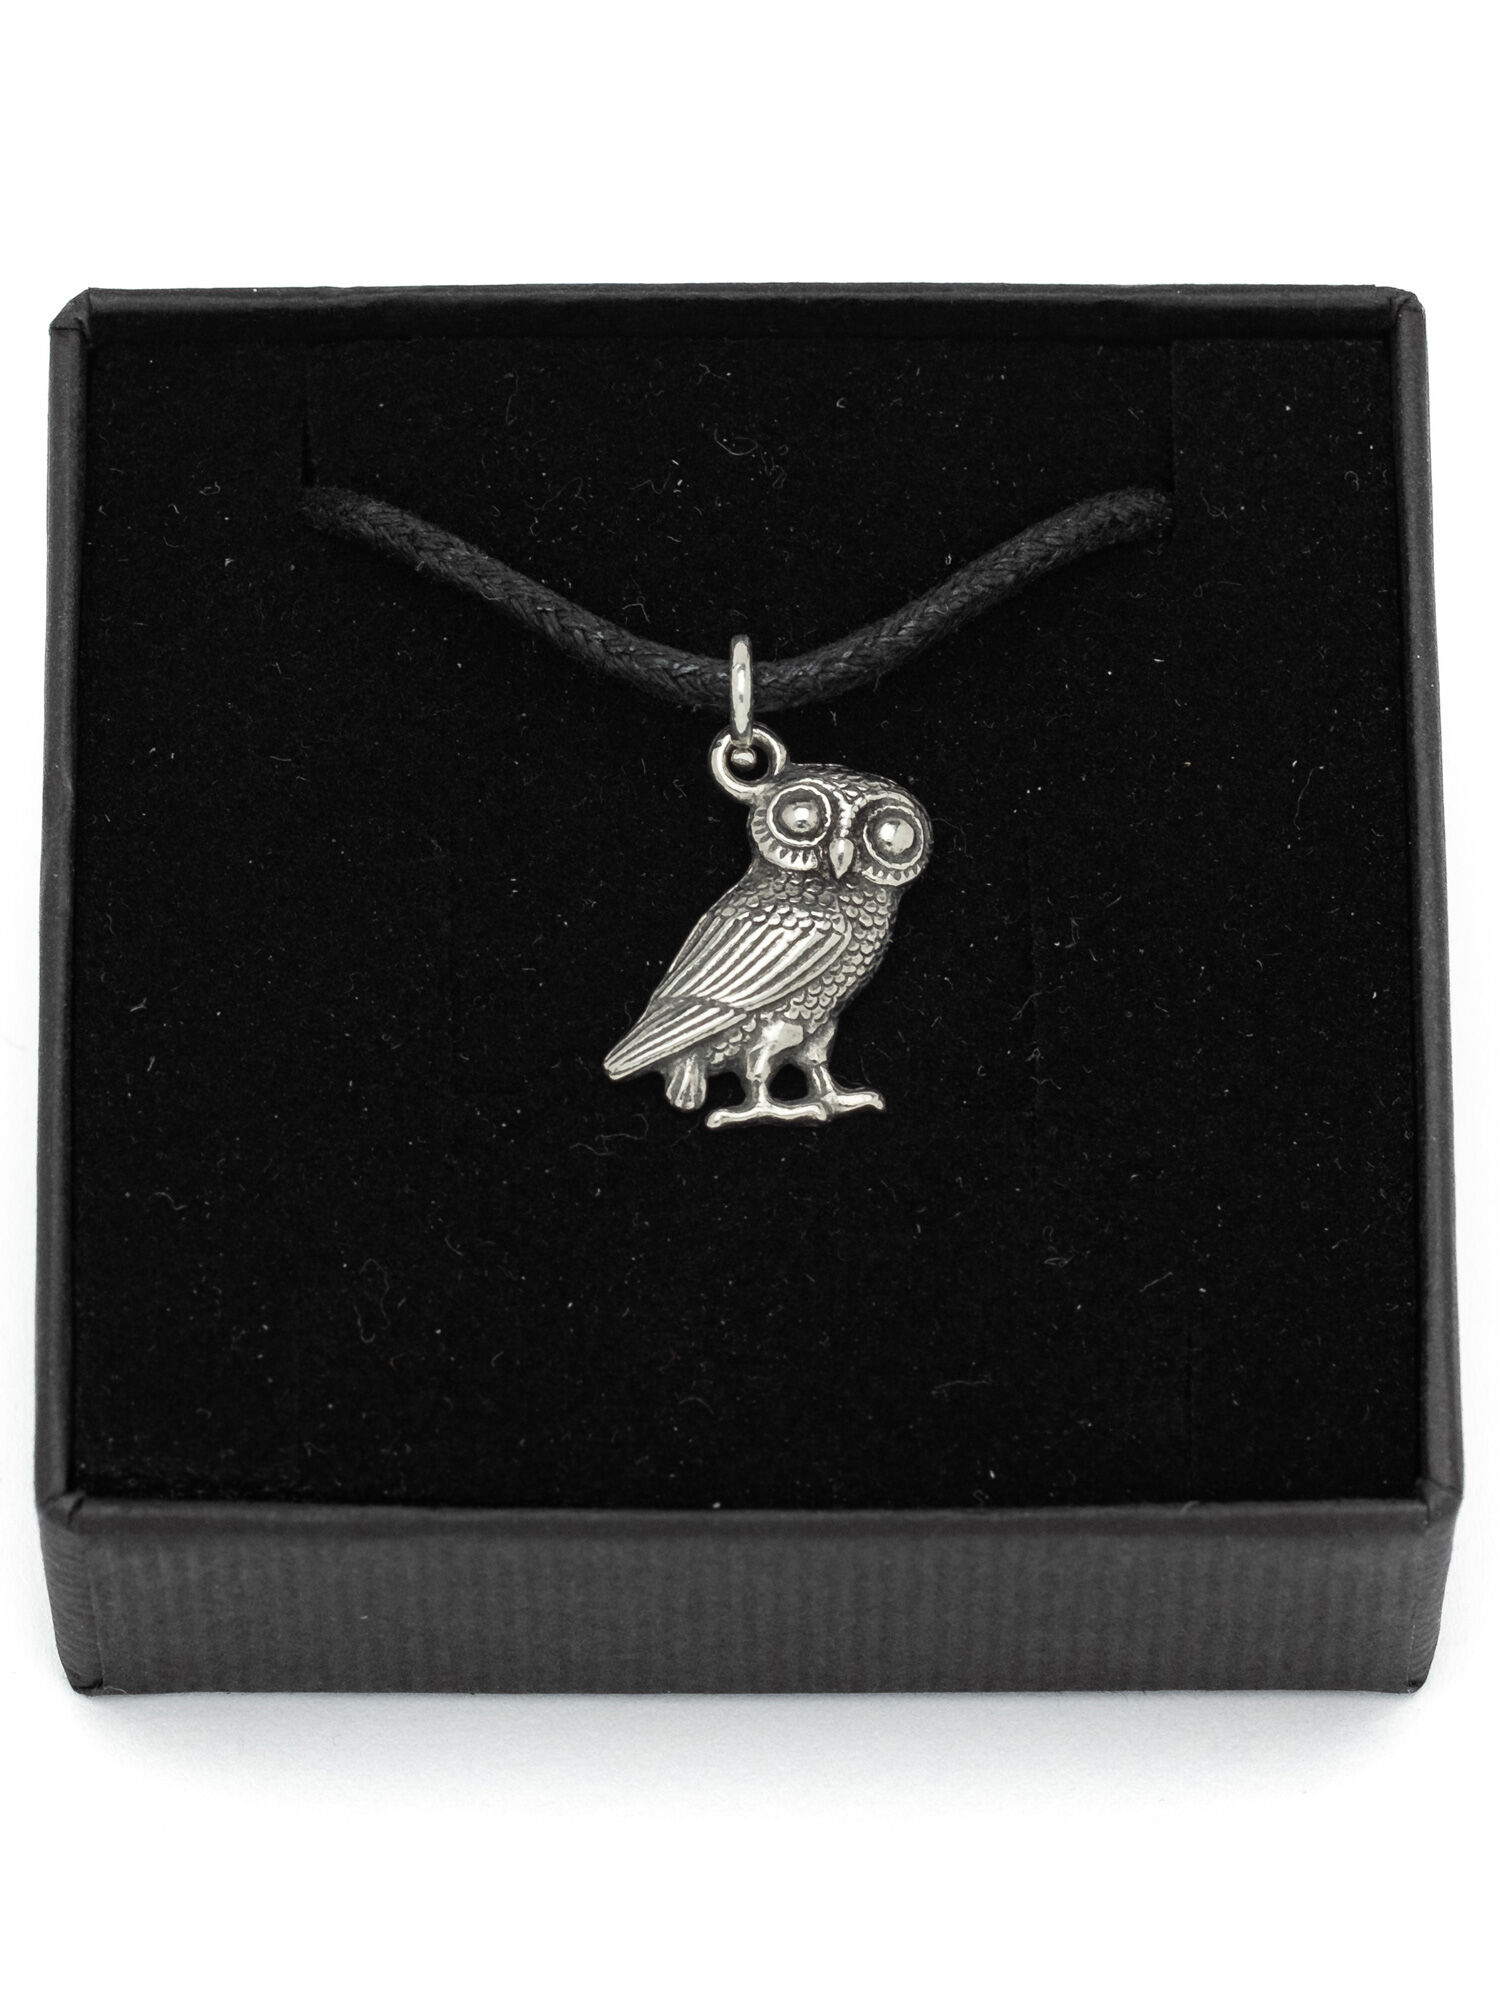 com eye jewelry blue belly necklace long big eyes le crystal stone premium amazon pendant dp s owl chain cat